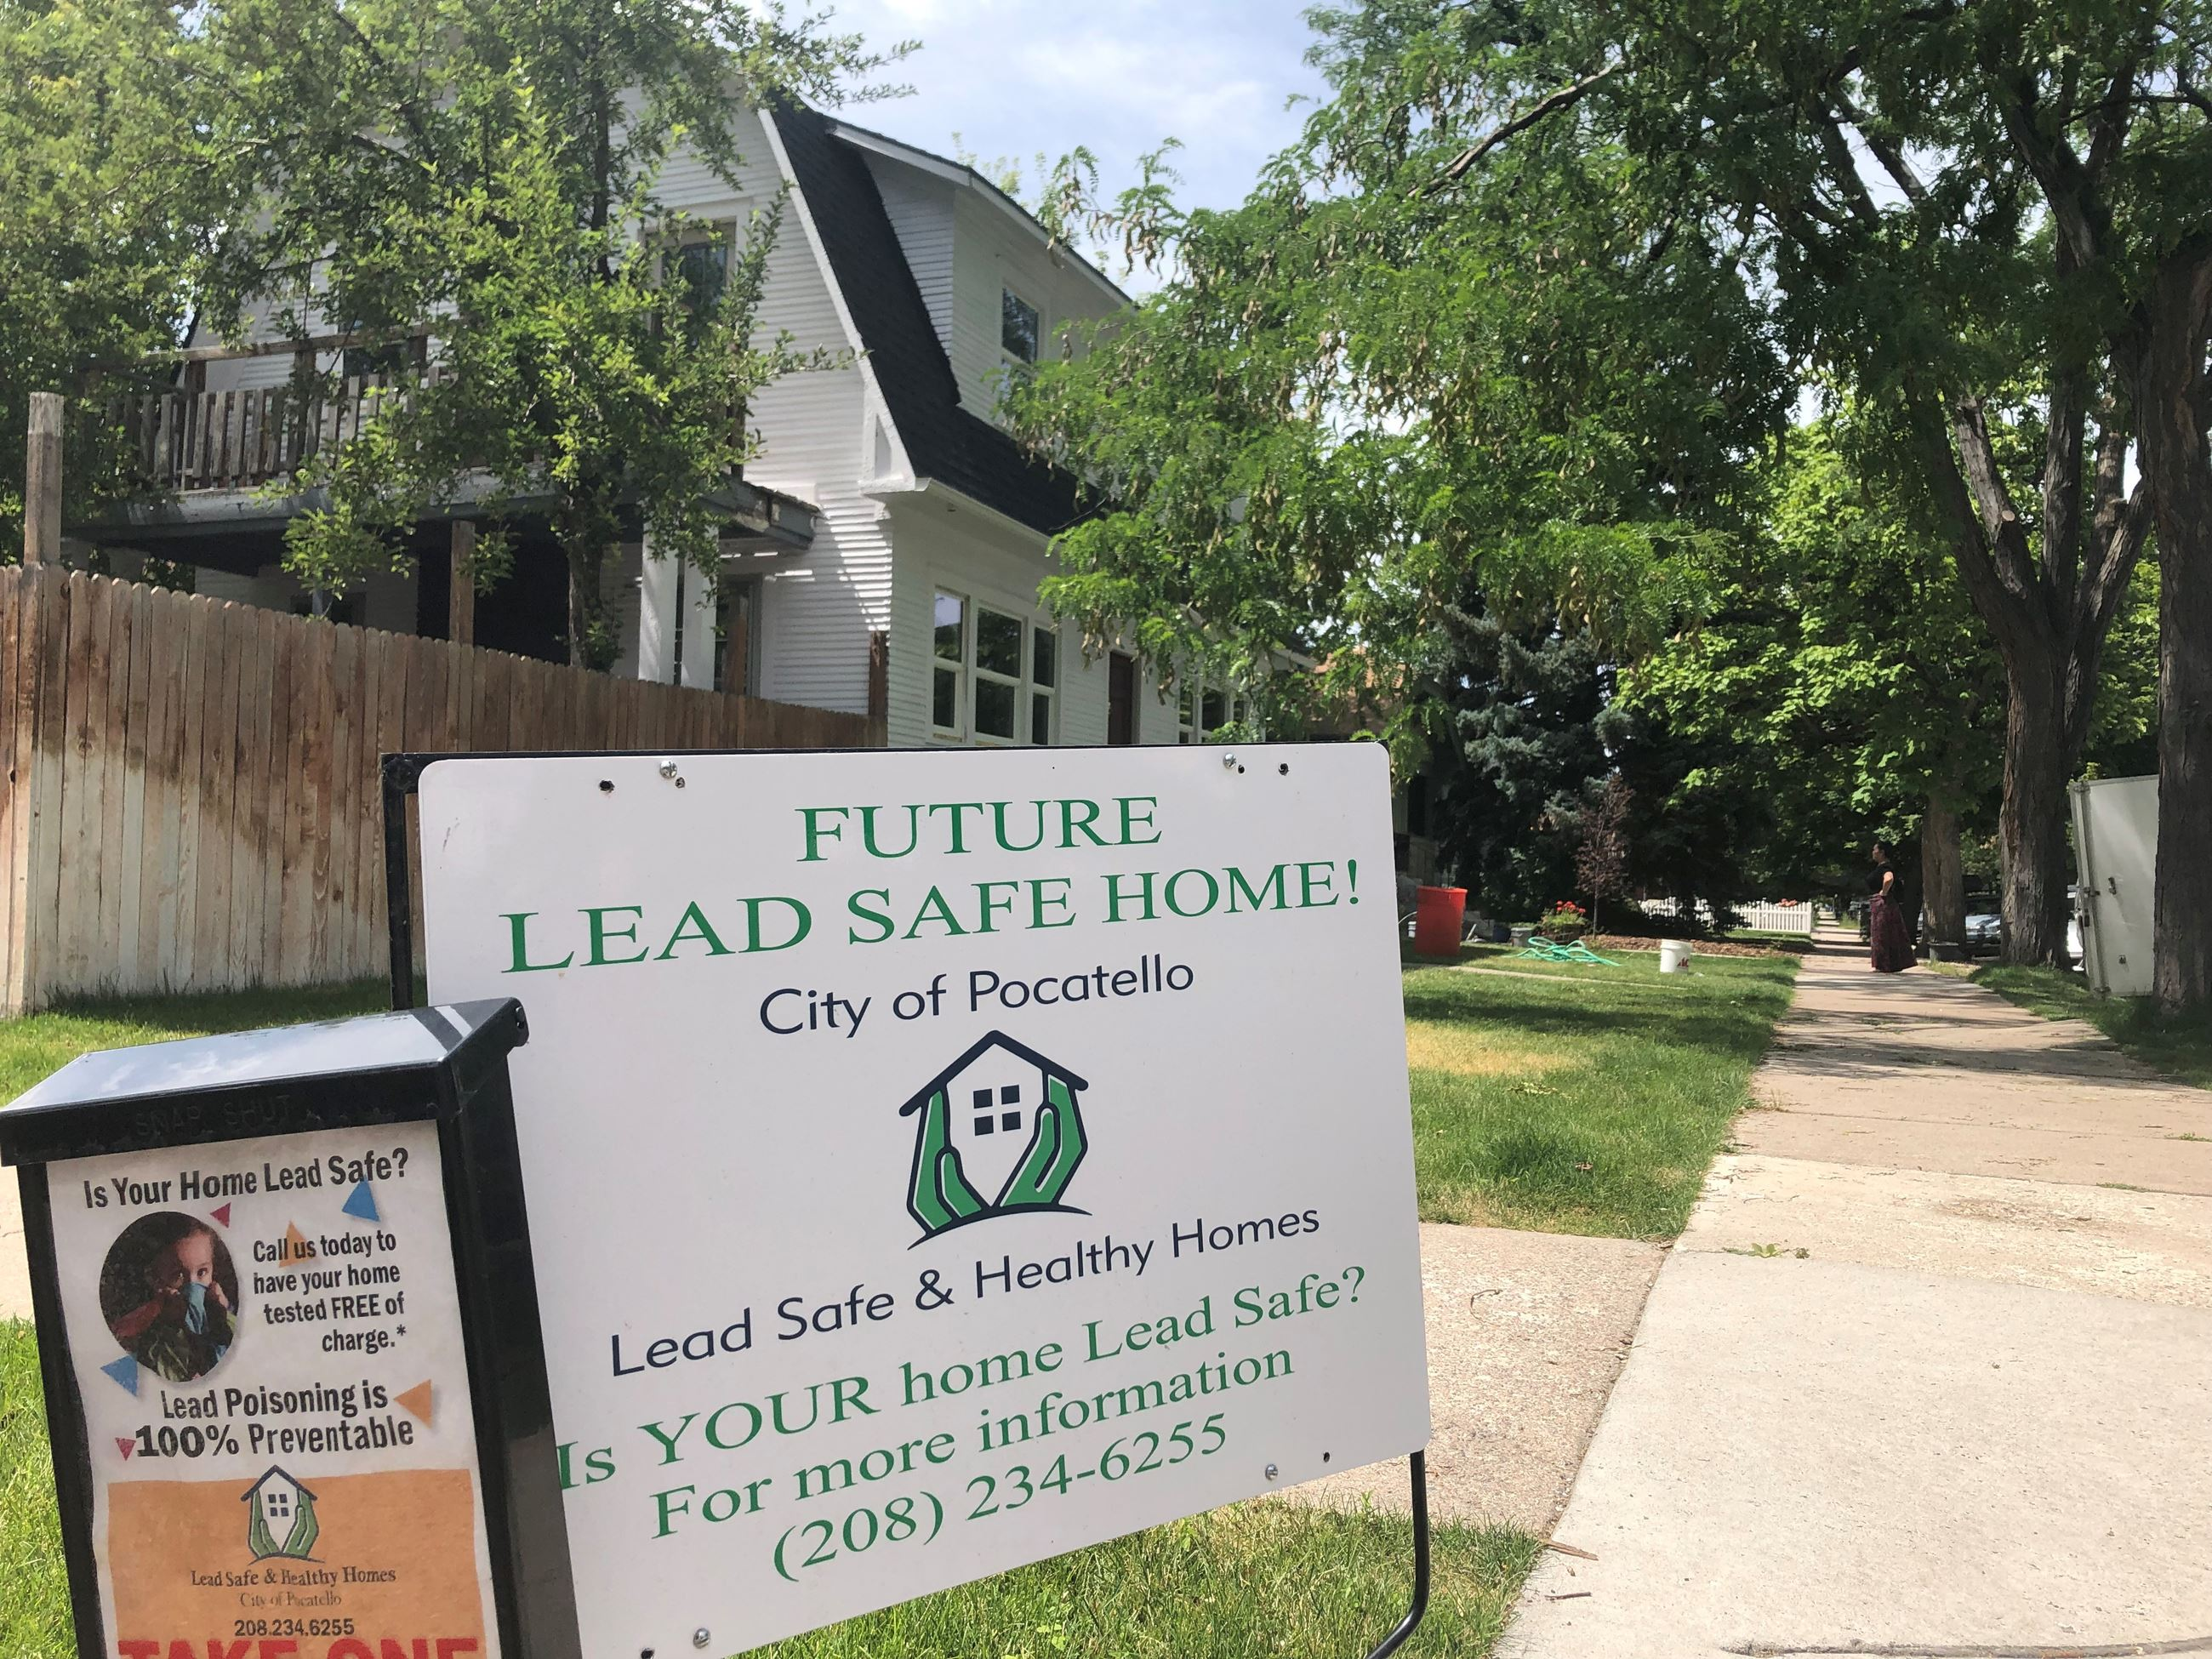 Photograph of home with Future Lead-Safe Home! sign in front